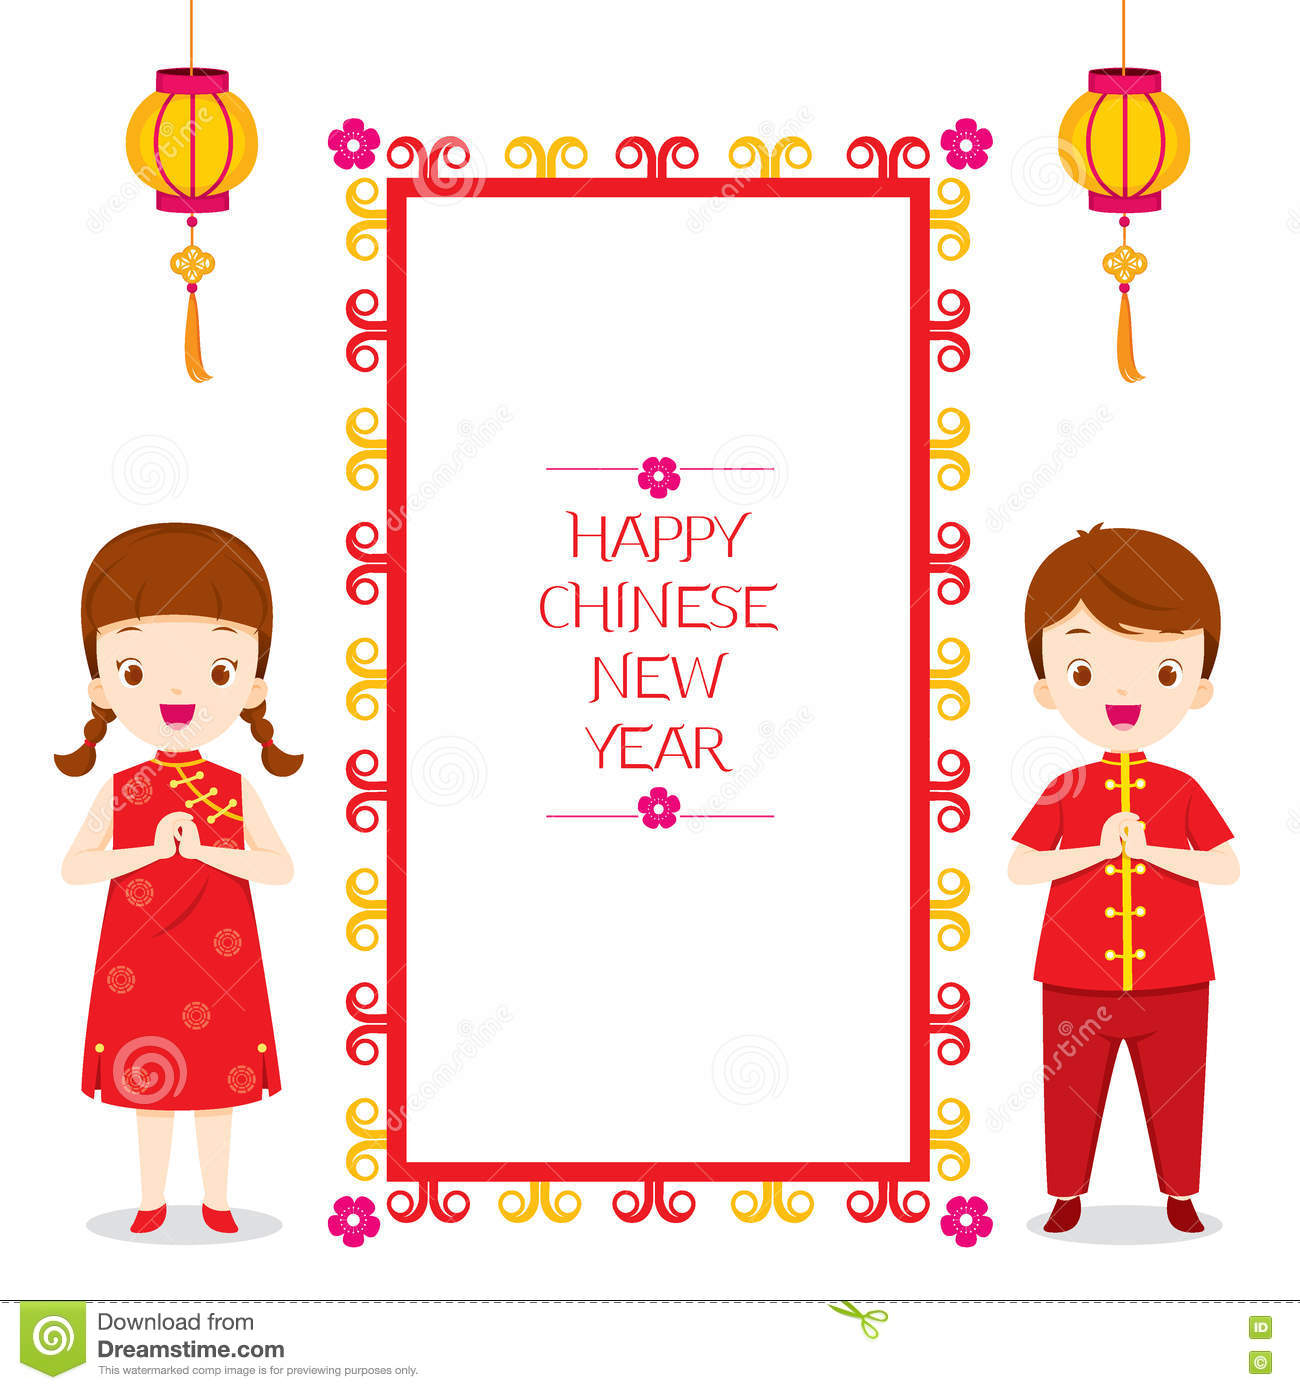 happy chinese new year frame with children